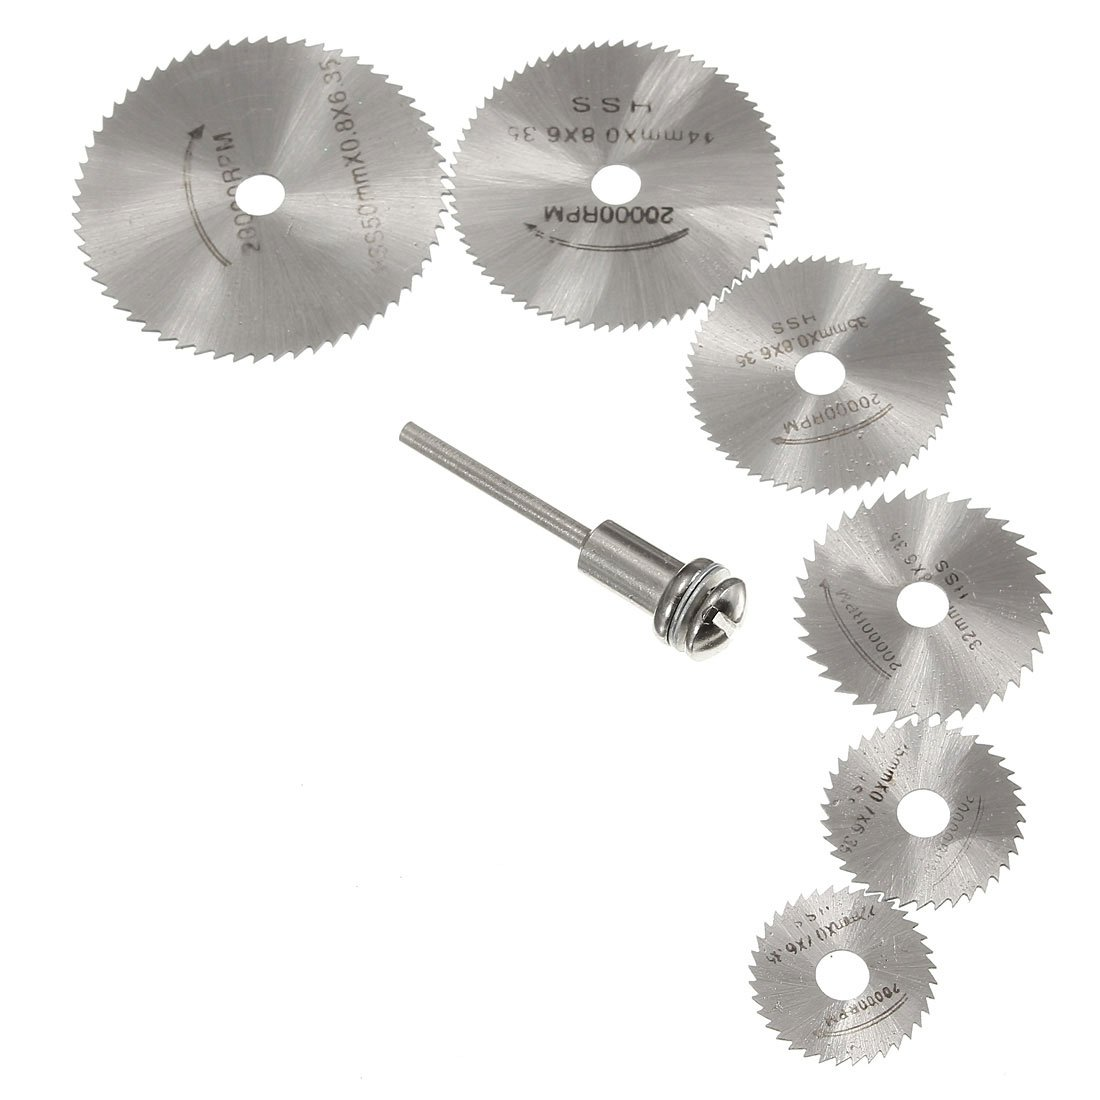 Kit HSS Circular Drive Saw Blade Circular Teeth + Mandrel For Dremel